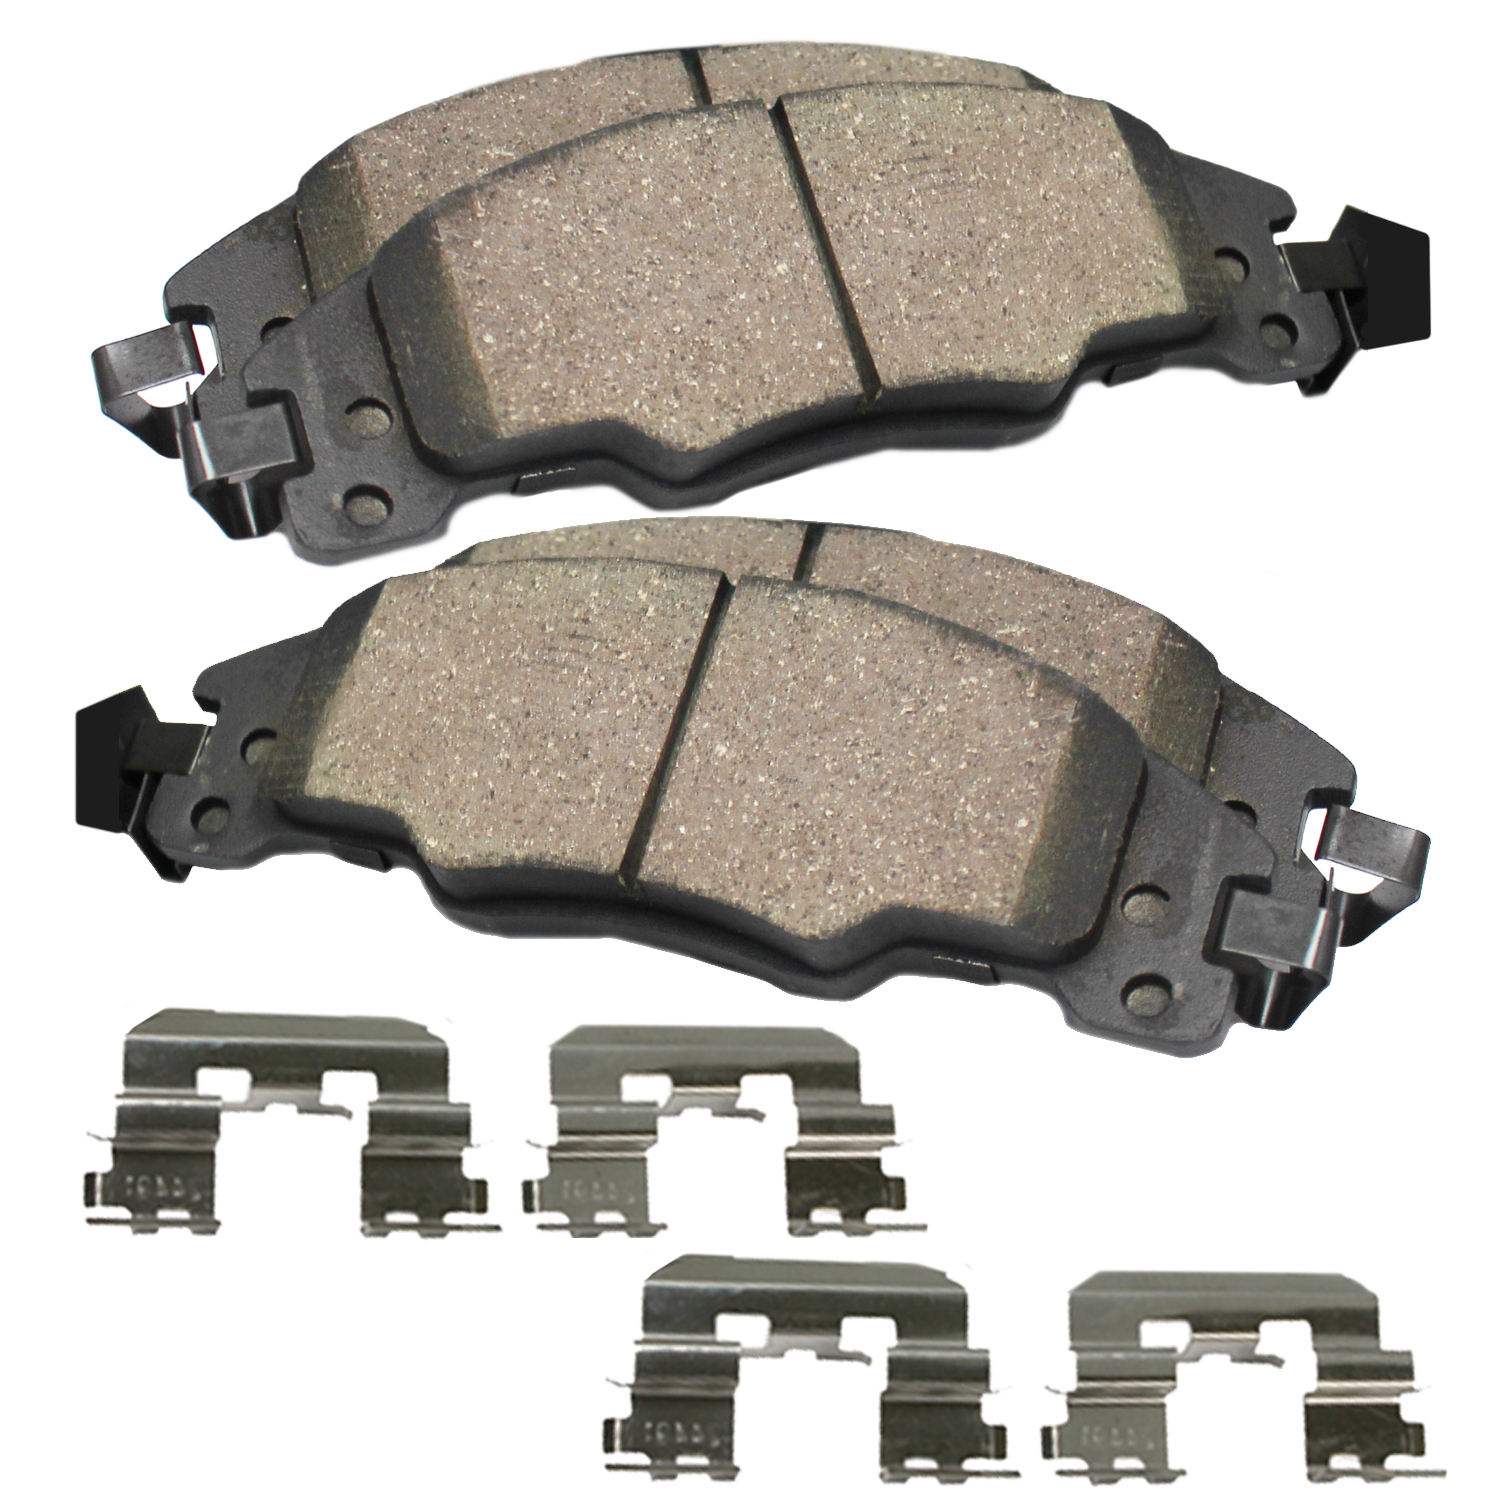 Rear Ceramic Brake Pads w/Hardware Kit for 2006-2010 Jeep Commander